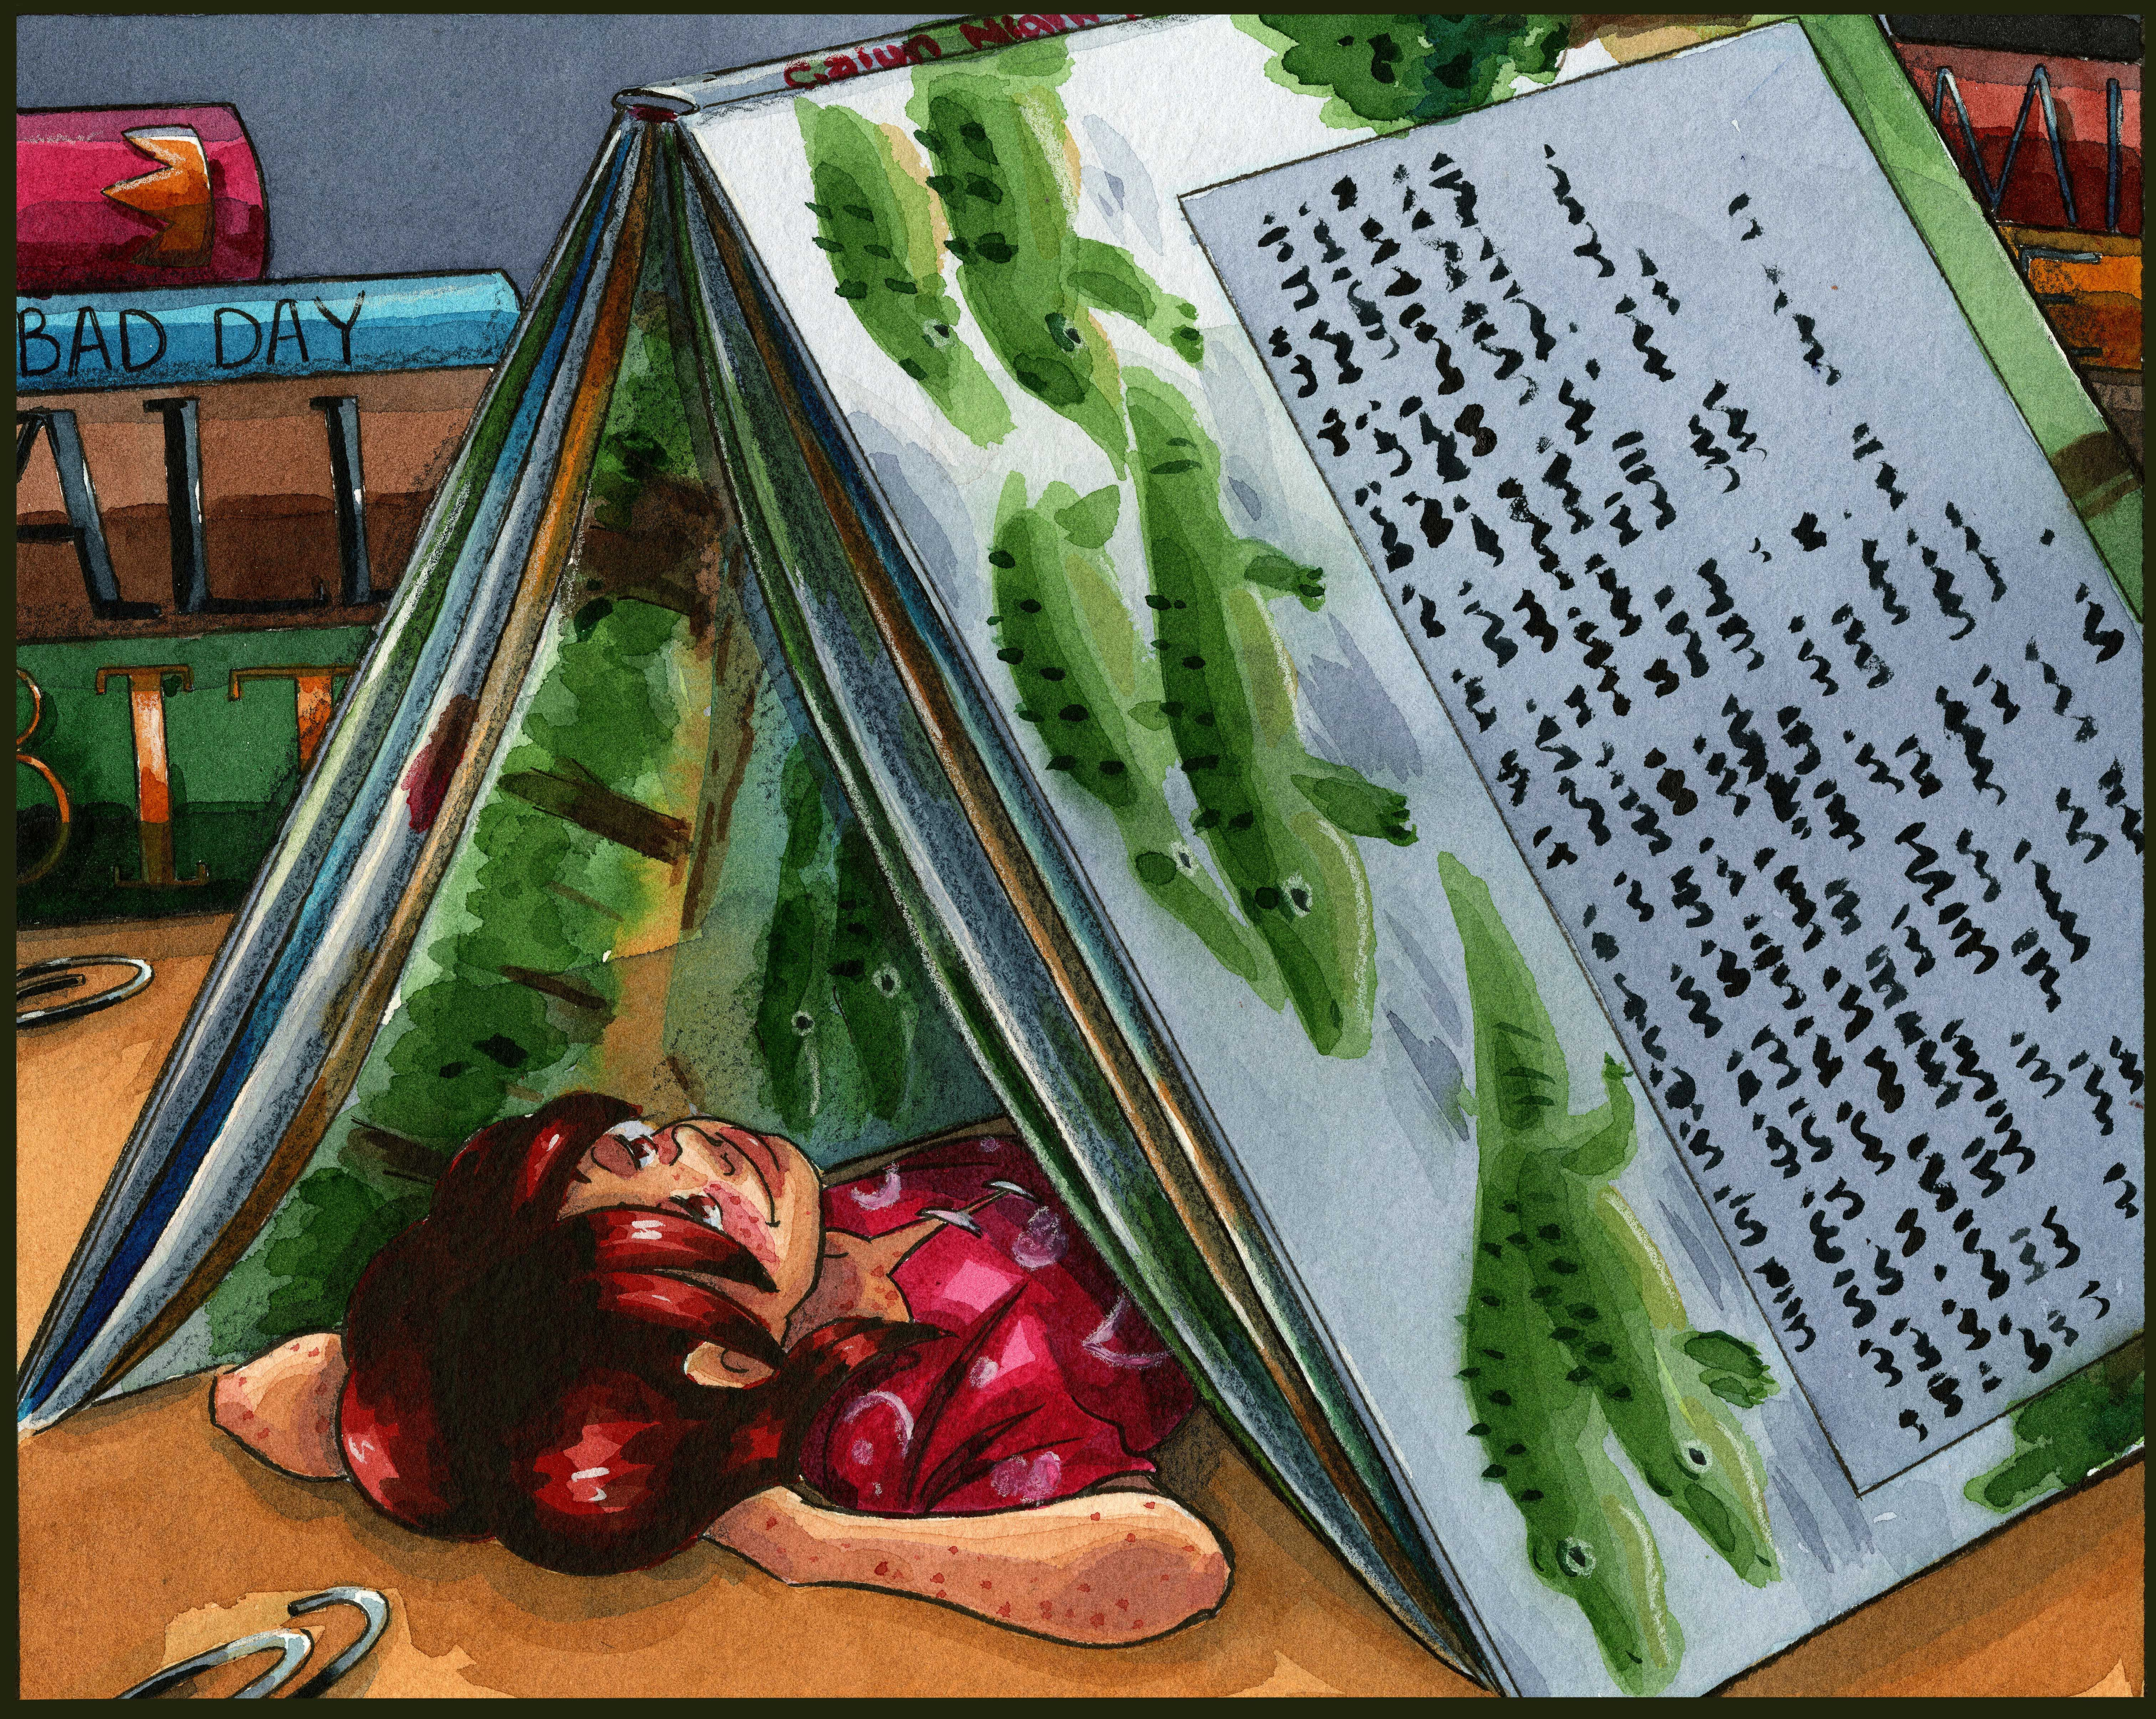 A book that doubles as a tent seems like a great way to get lost in a good story!  #watercolor #watercolorart #watercolorillustration #picturebookart #comicbookart #cuteart #ghiblivibes #webcomicart #art #illustration #painting